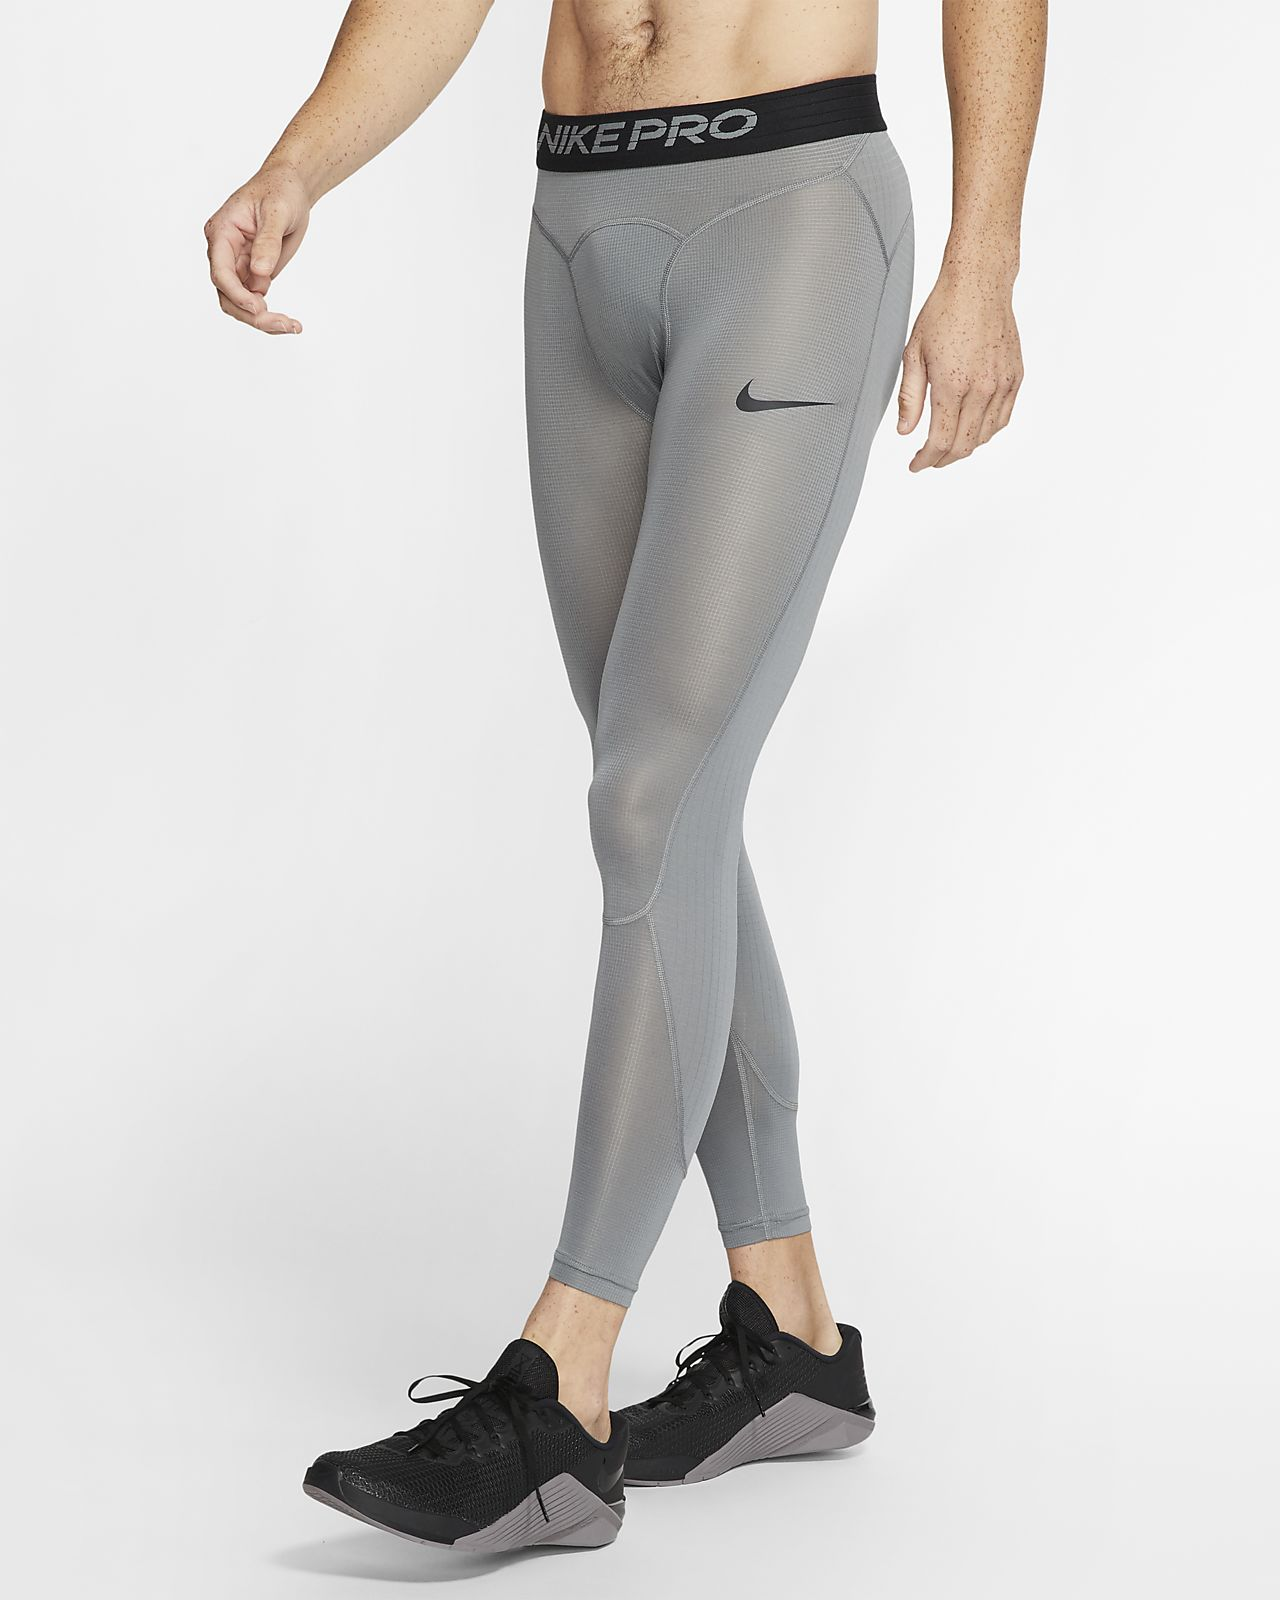 Nike Women Sport shoes Sale Up To 88% Off | Thousands Of